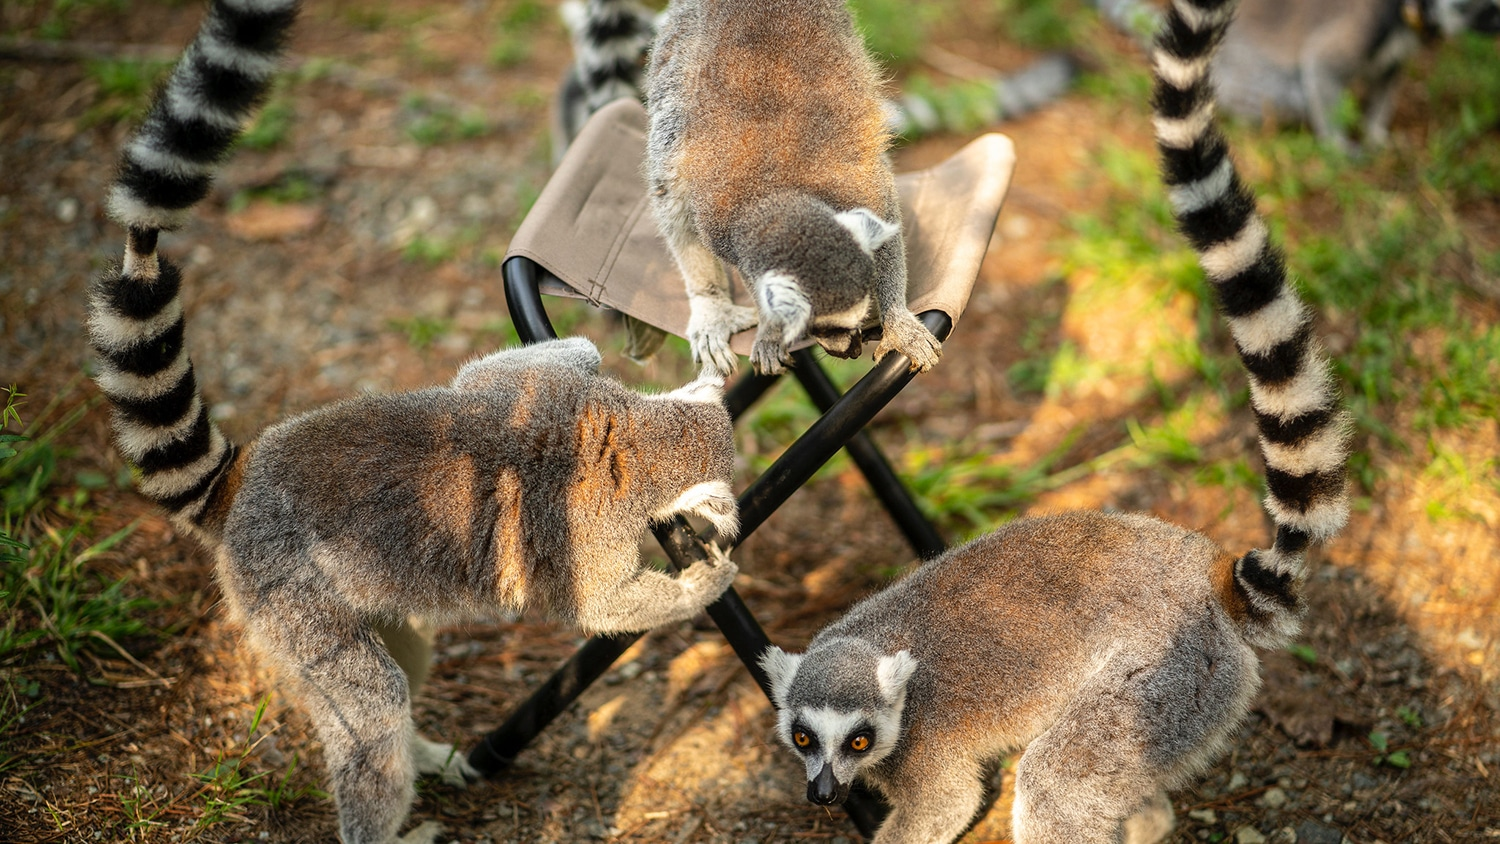 Three lemurs crawl on and around a small stool in a forest